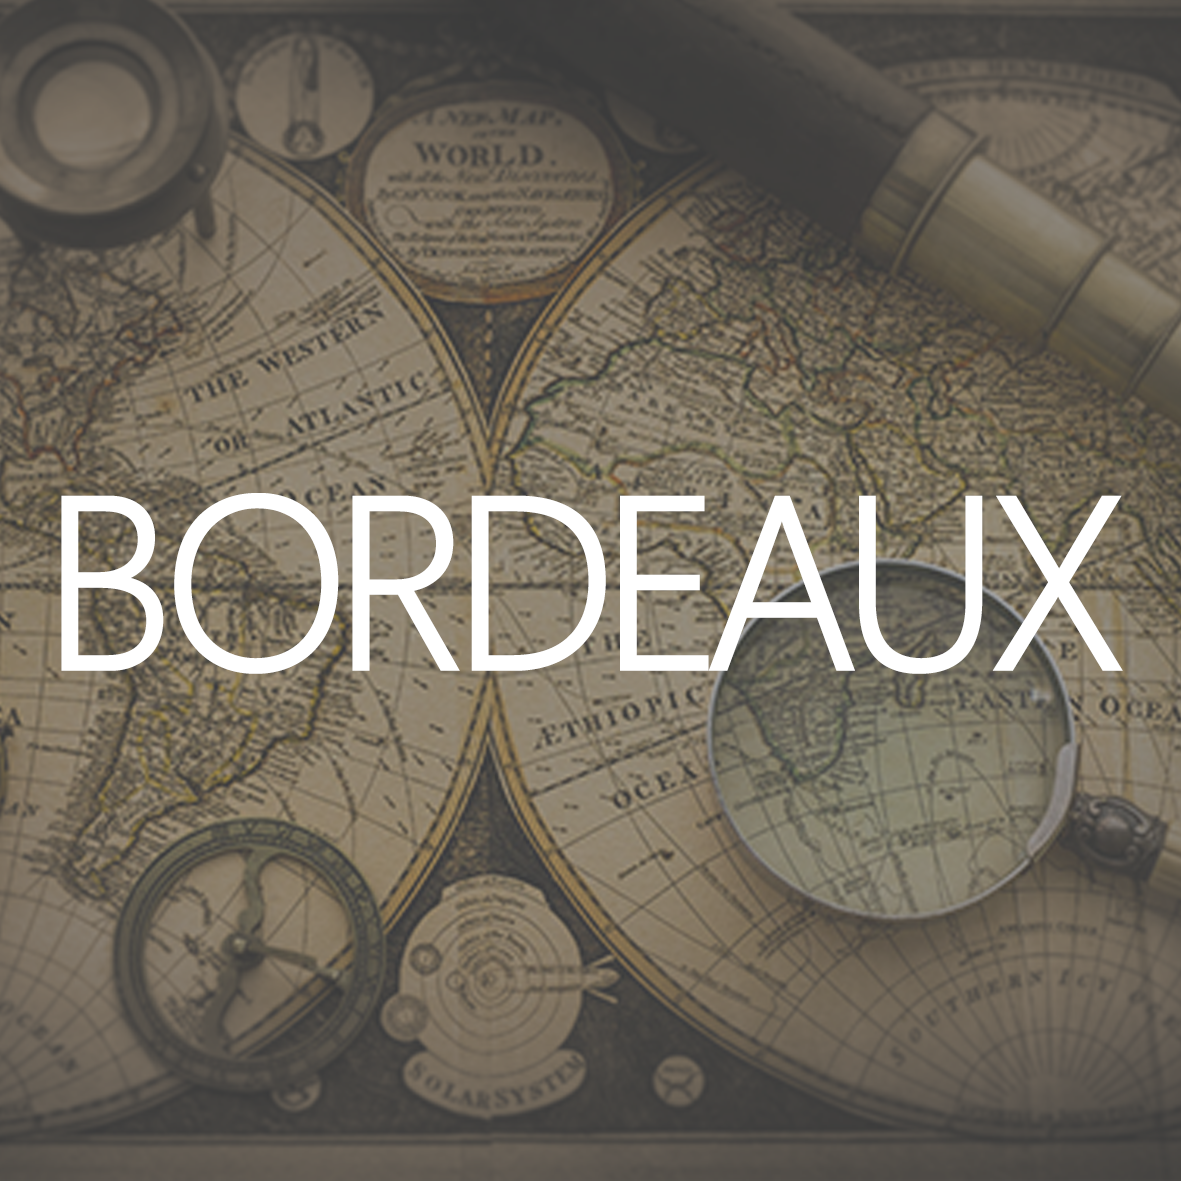 Bordeaux reservation